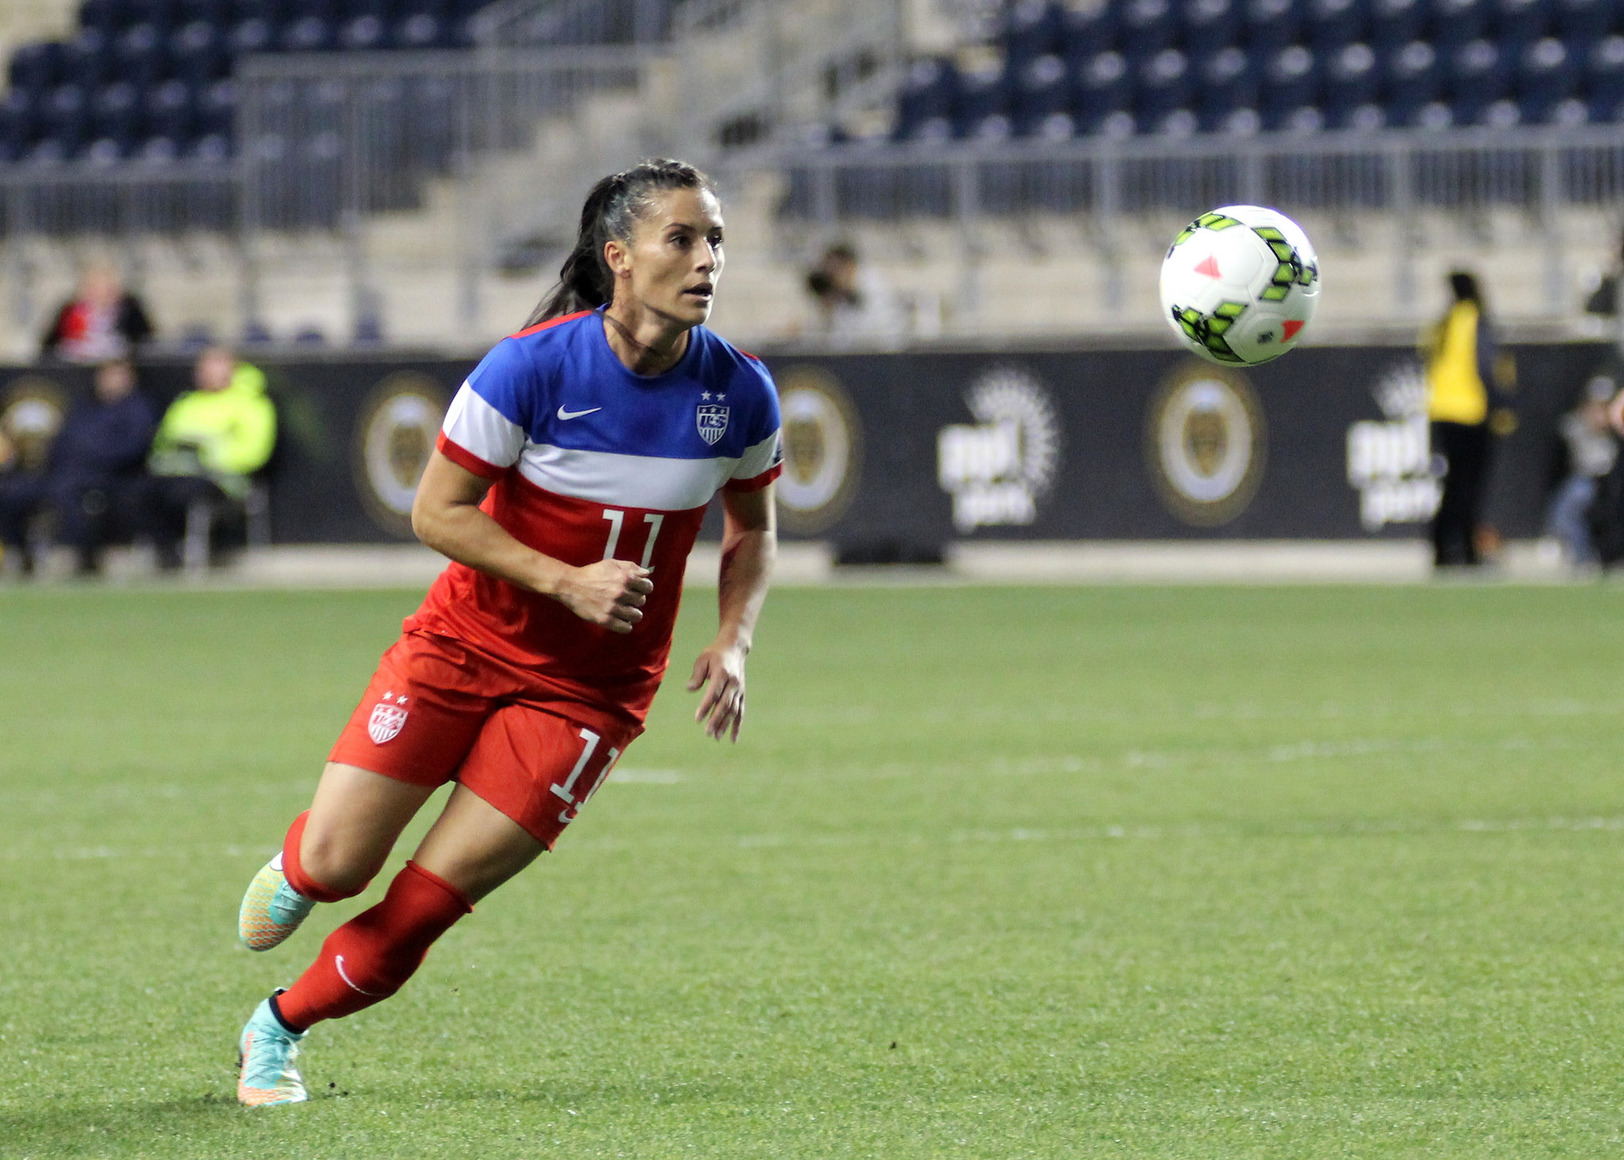 41b4bd5d4e8 Two Penn State Alumni To Play In 2015 FIFA Women's World Cup